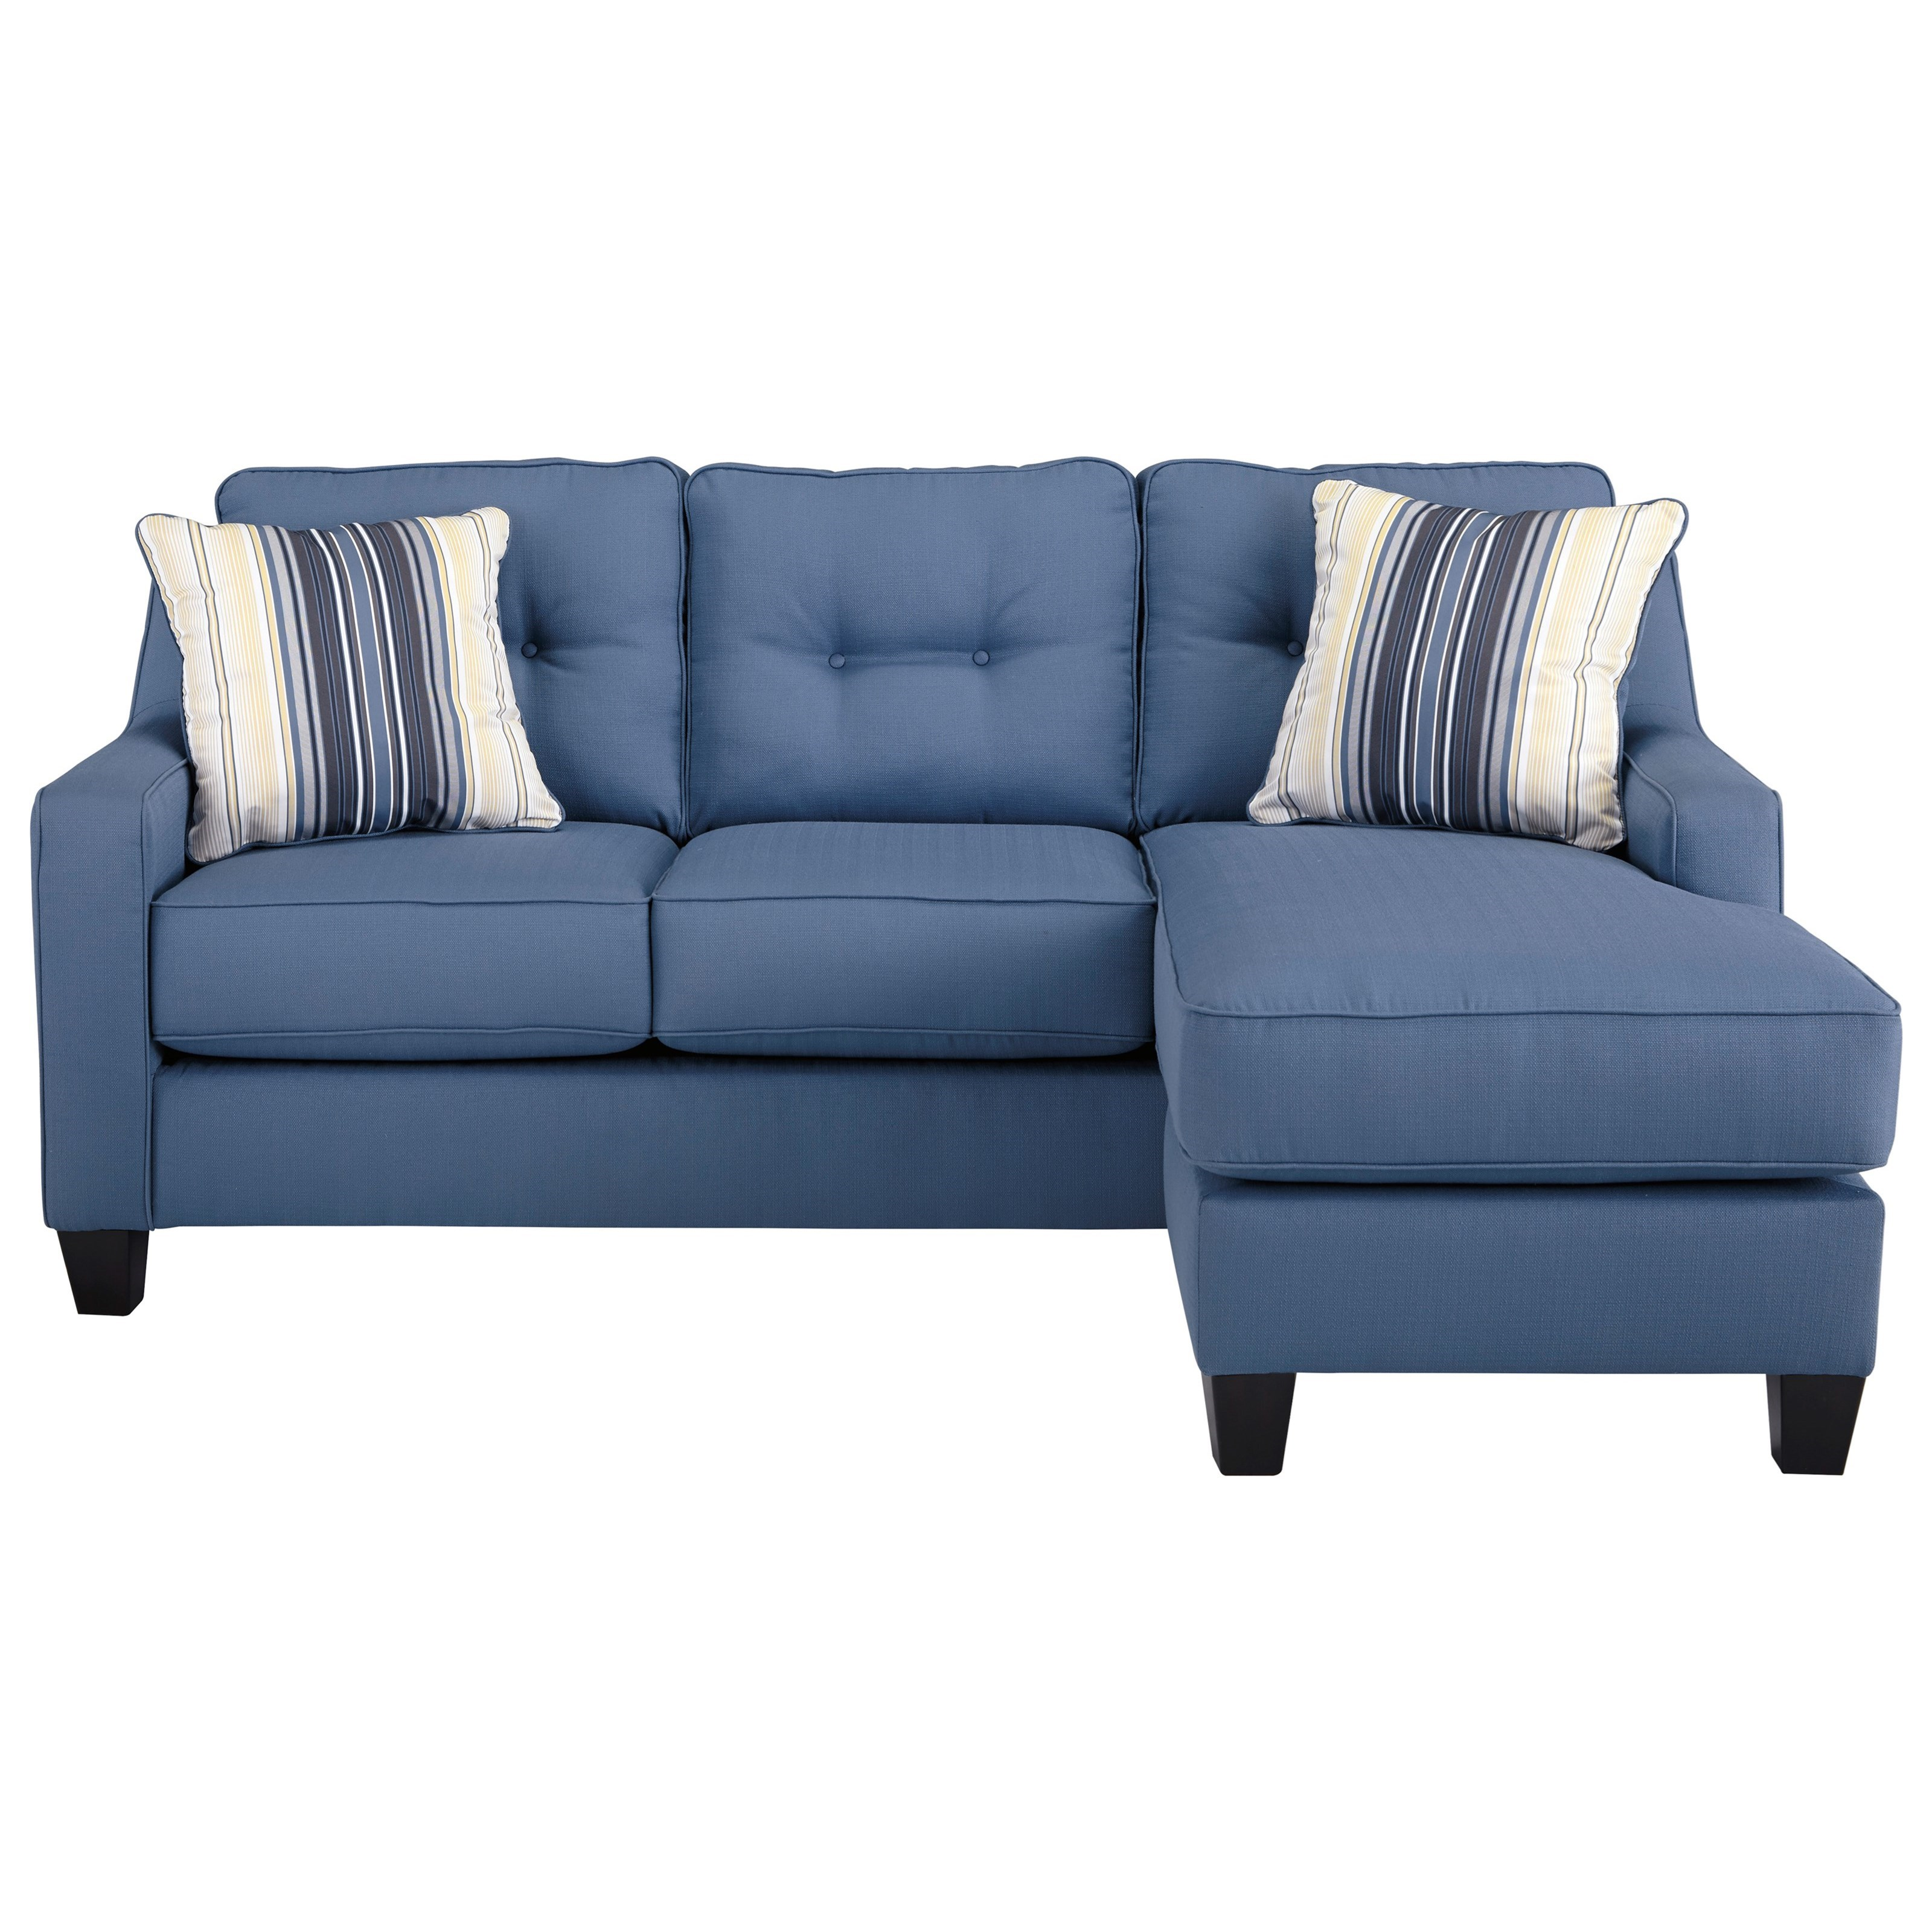 Benchcraft Aldie Nuvella Sofa Chaise - Item Number: 6870318